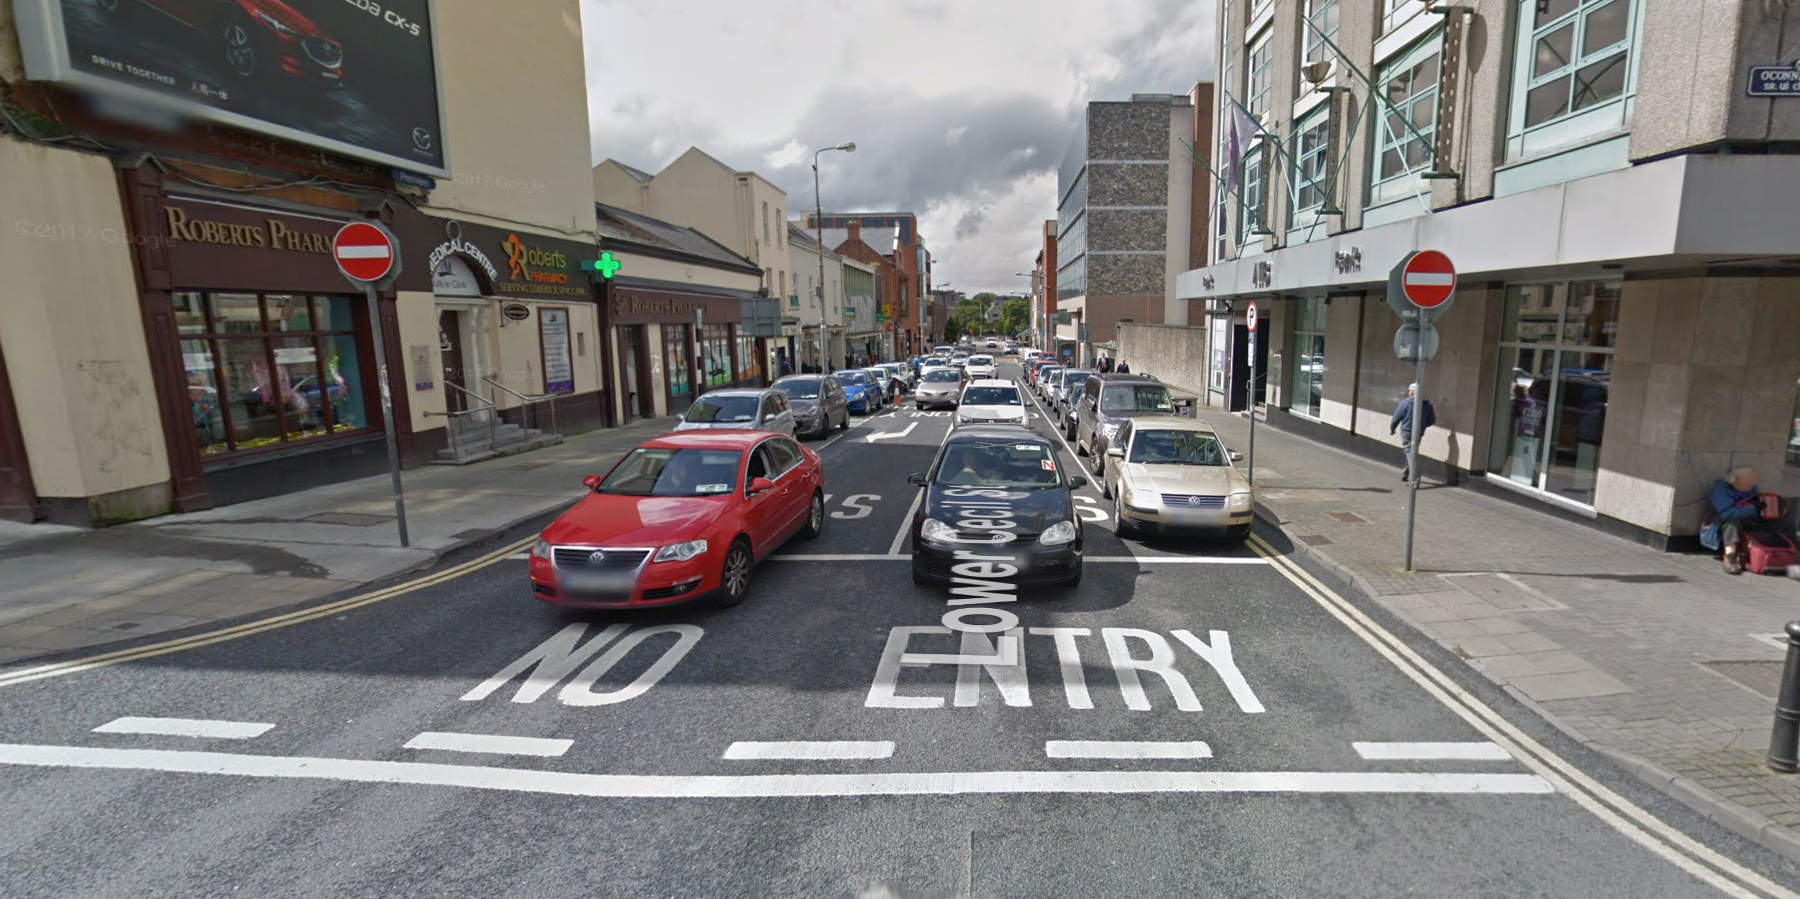 Lower Cecil Street in Limerick, Ireland.